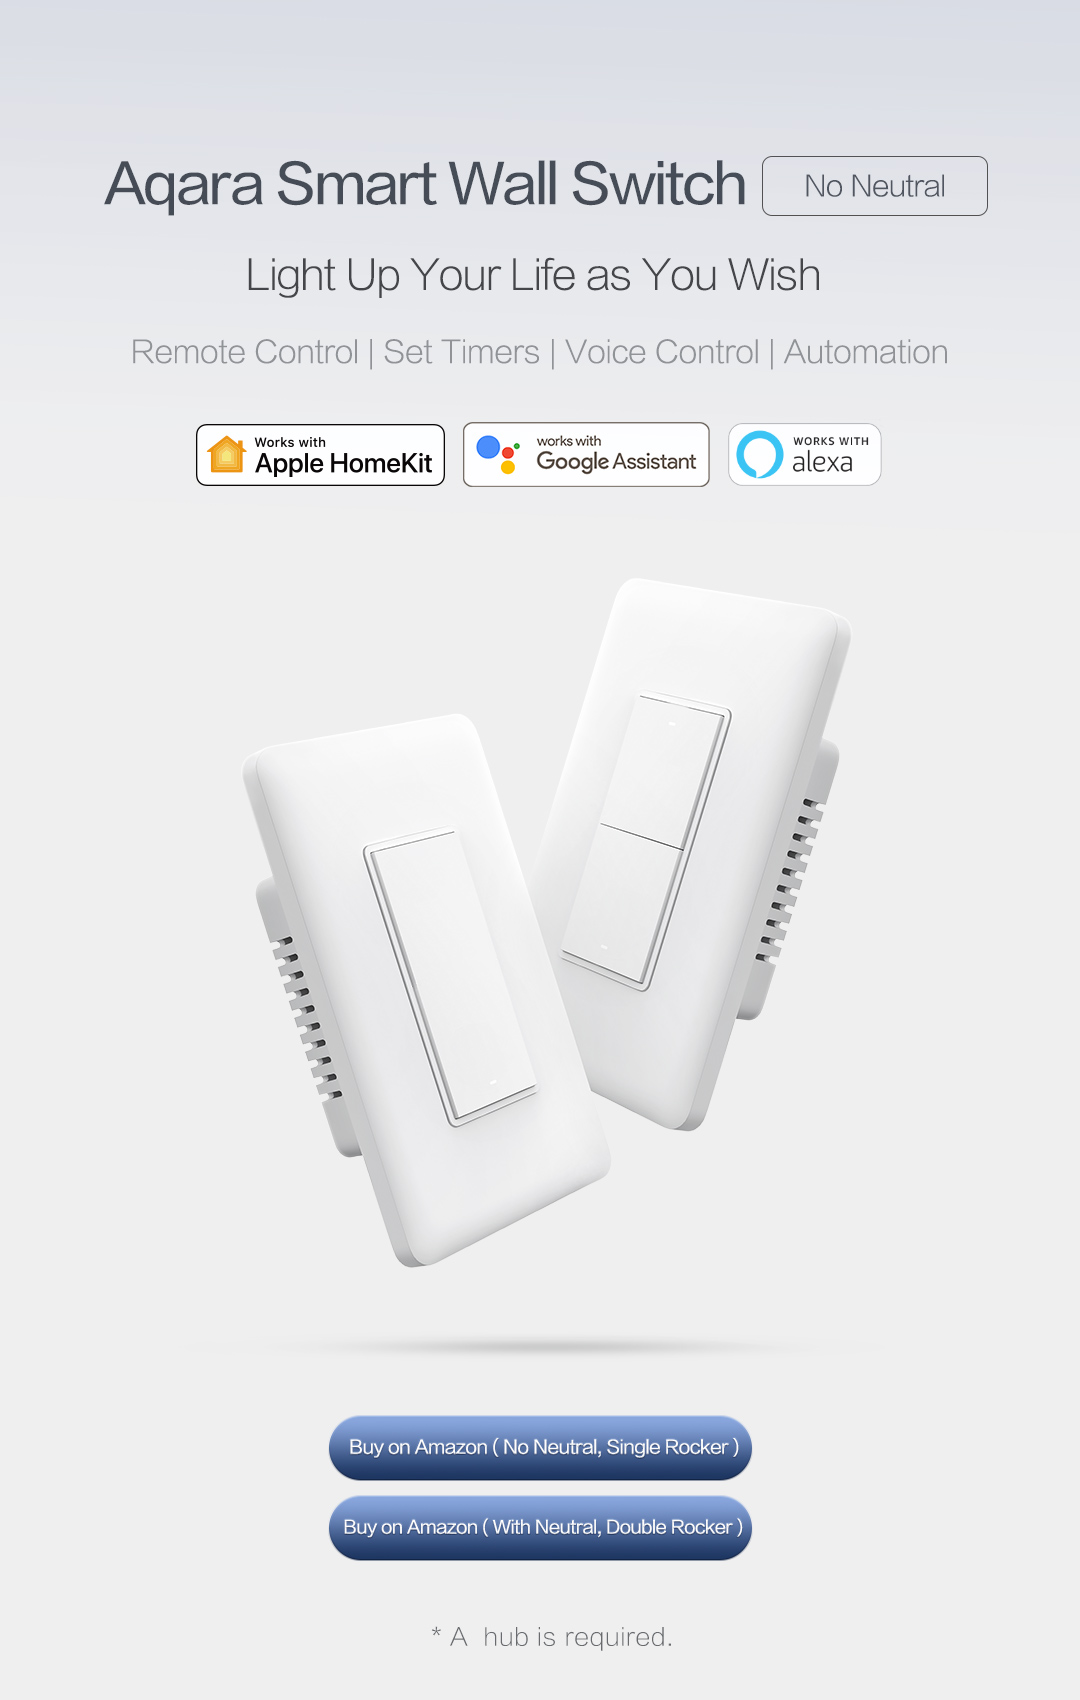 US version smart swtich no neutral supporting remote control, set timers, voice control and automation.